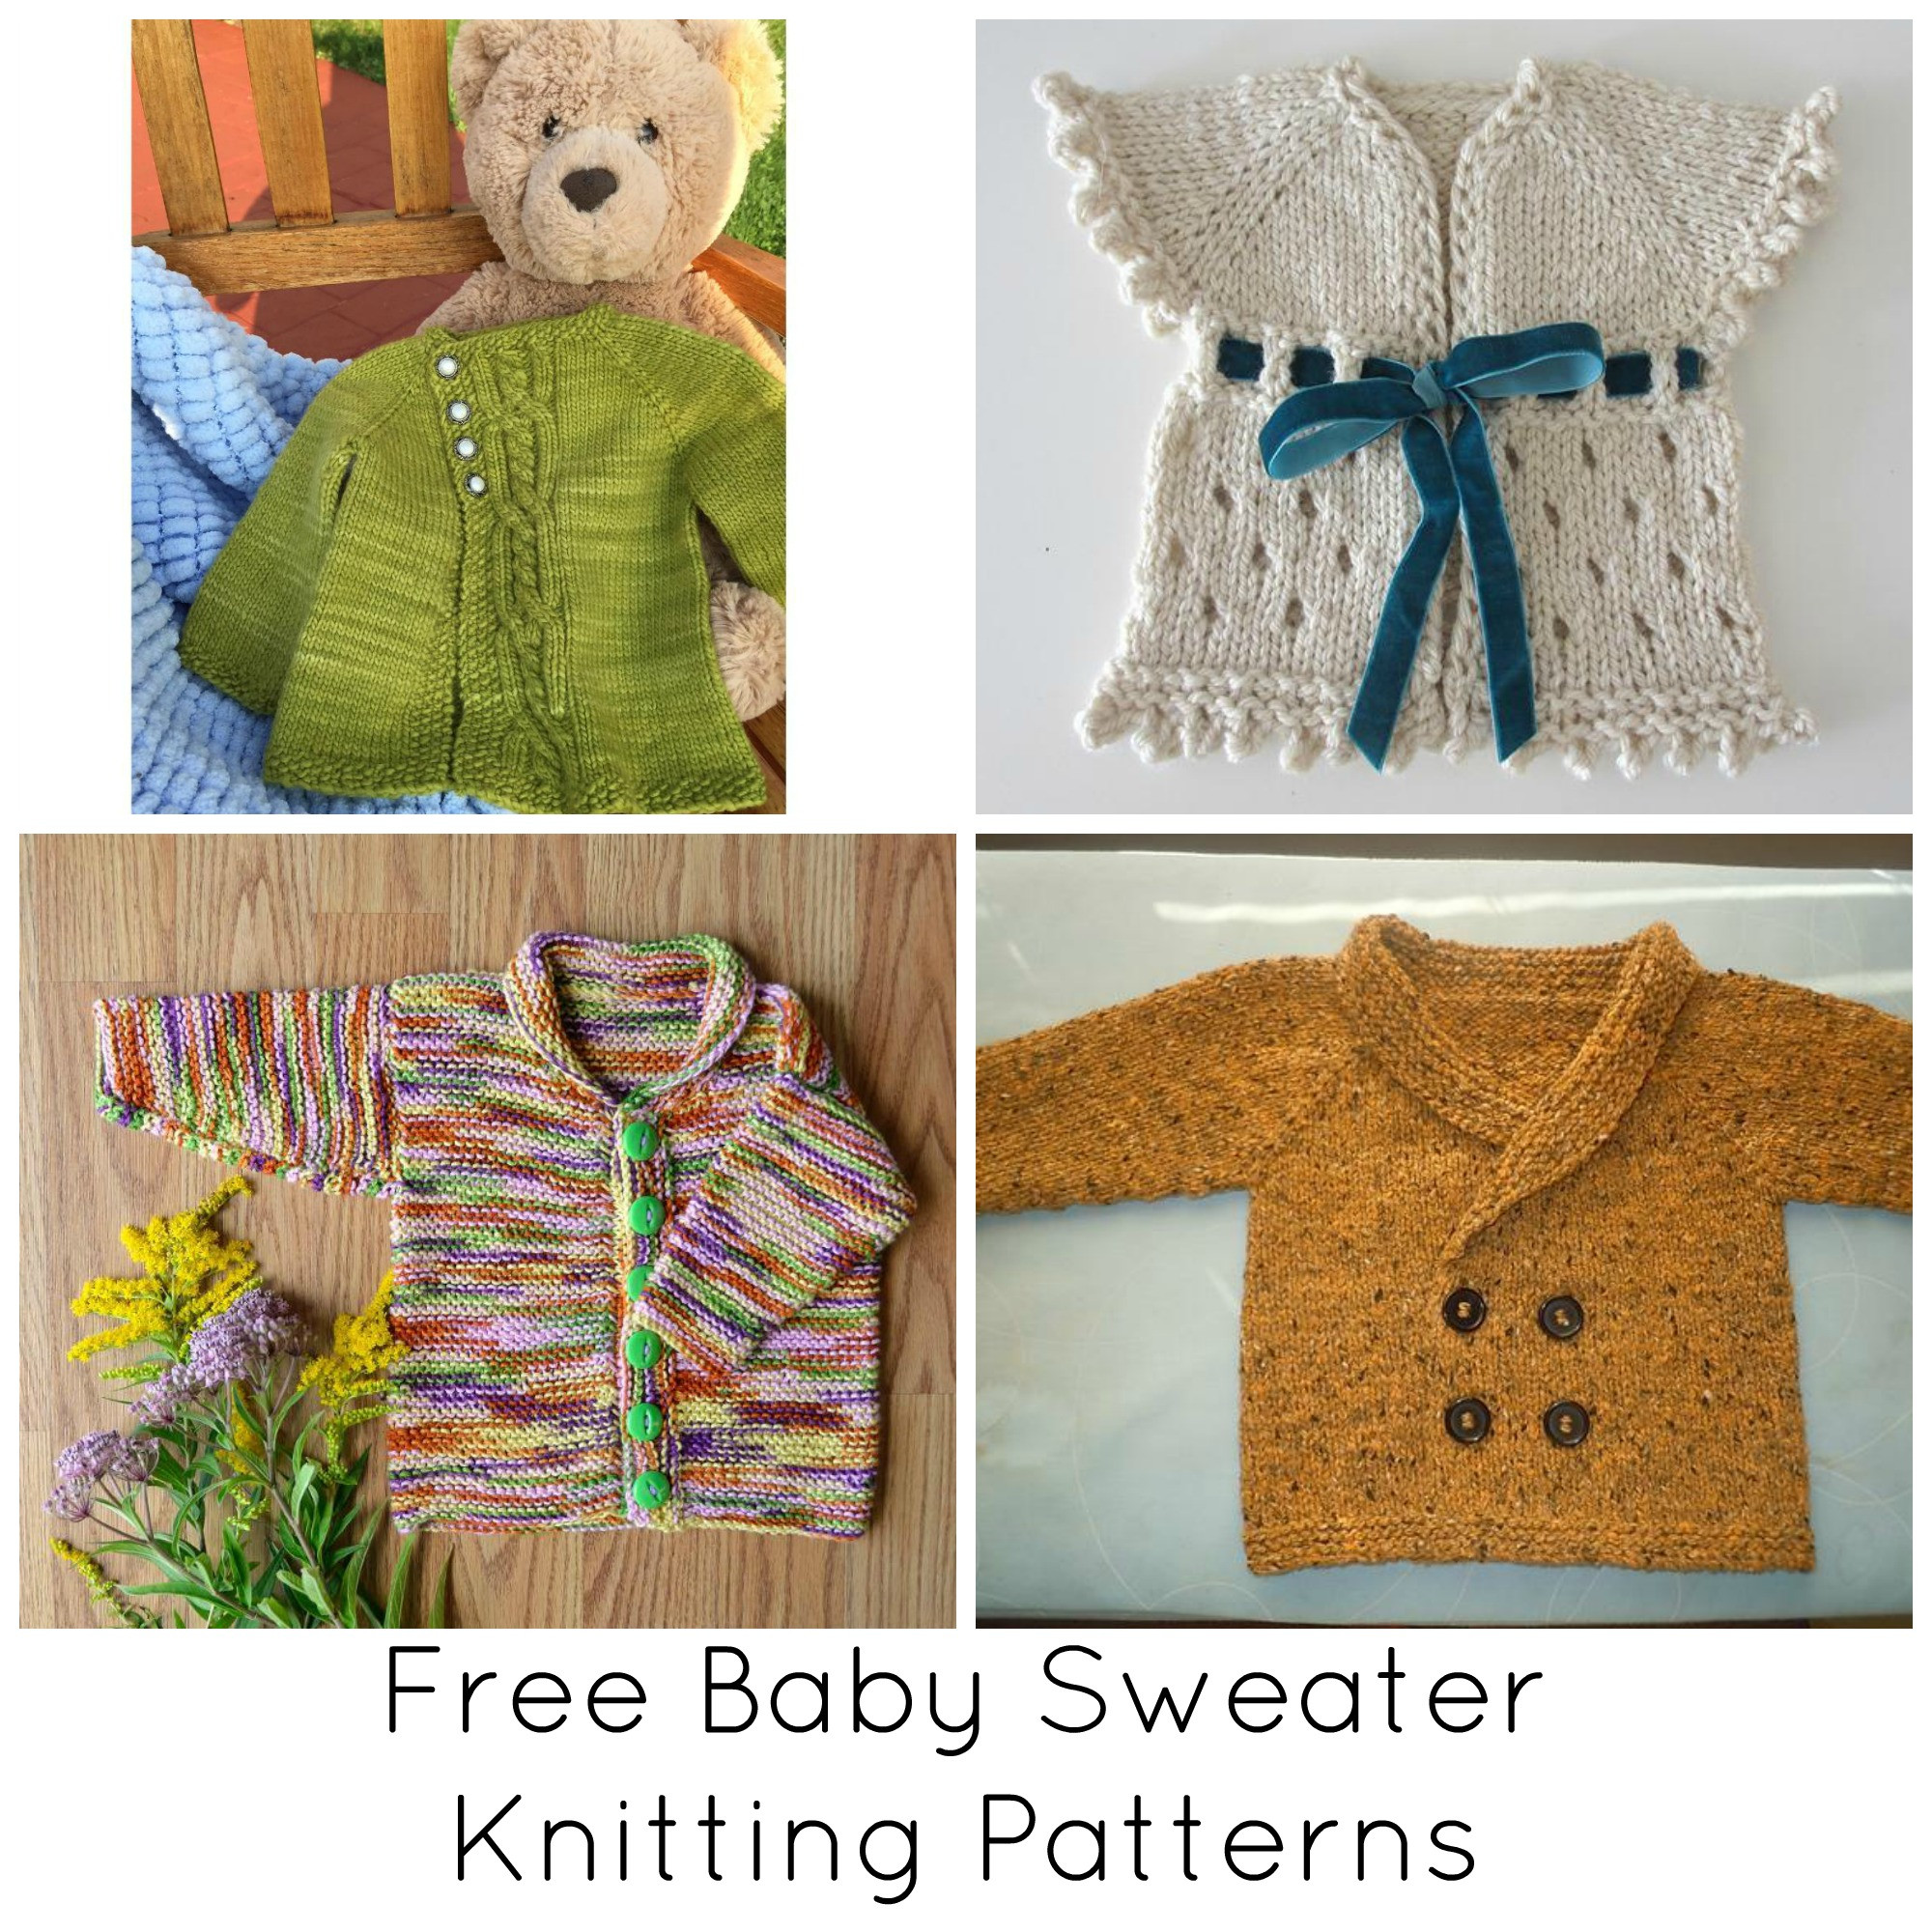 New Our Favorite Free Baby Sweater Knitting Patterns toddler Sweater Knitting Pattern Of Amazing 43 Ideas toddler Sweater Knitting Pattern